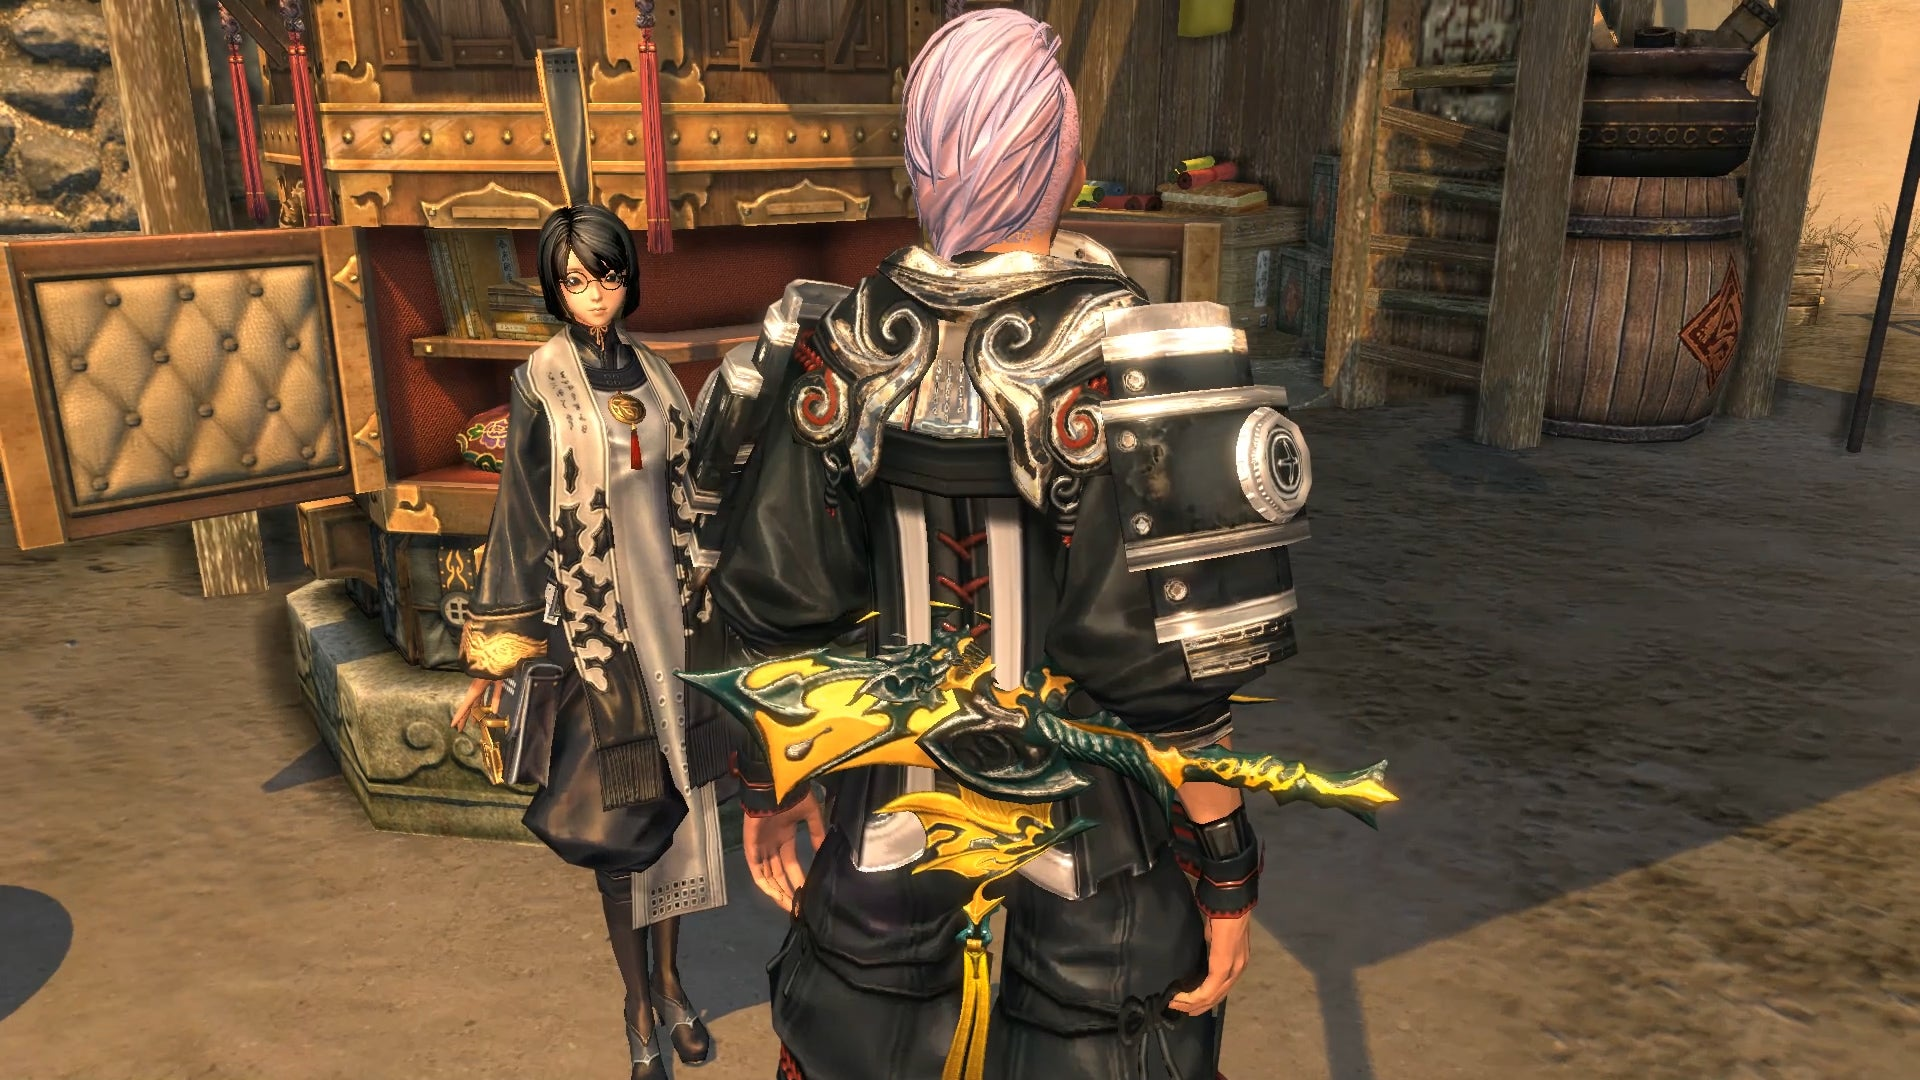 My New Best Friend Is A Blade & Soul NPC